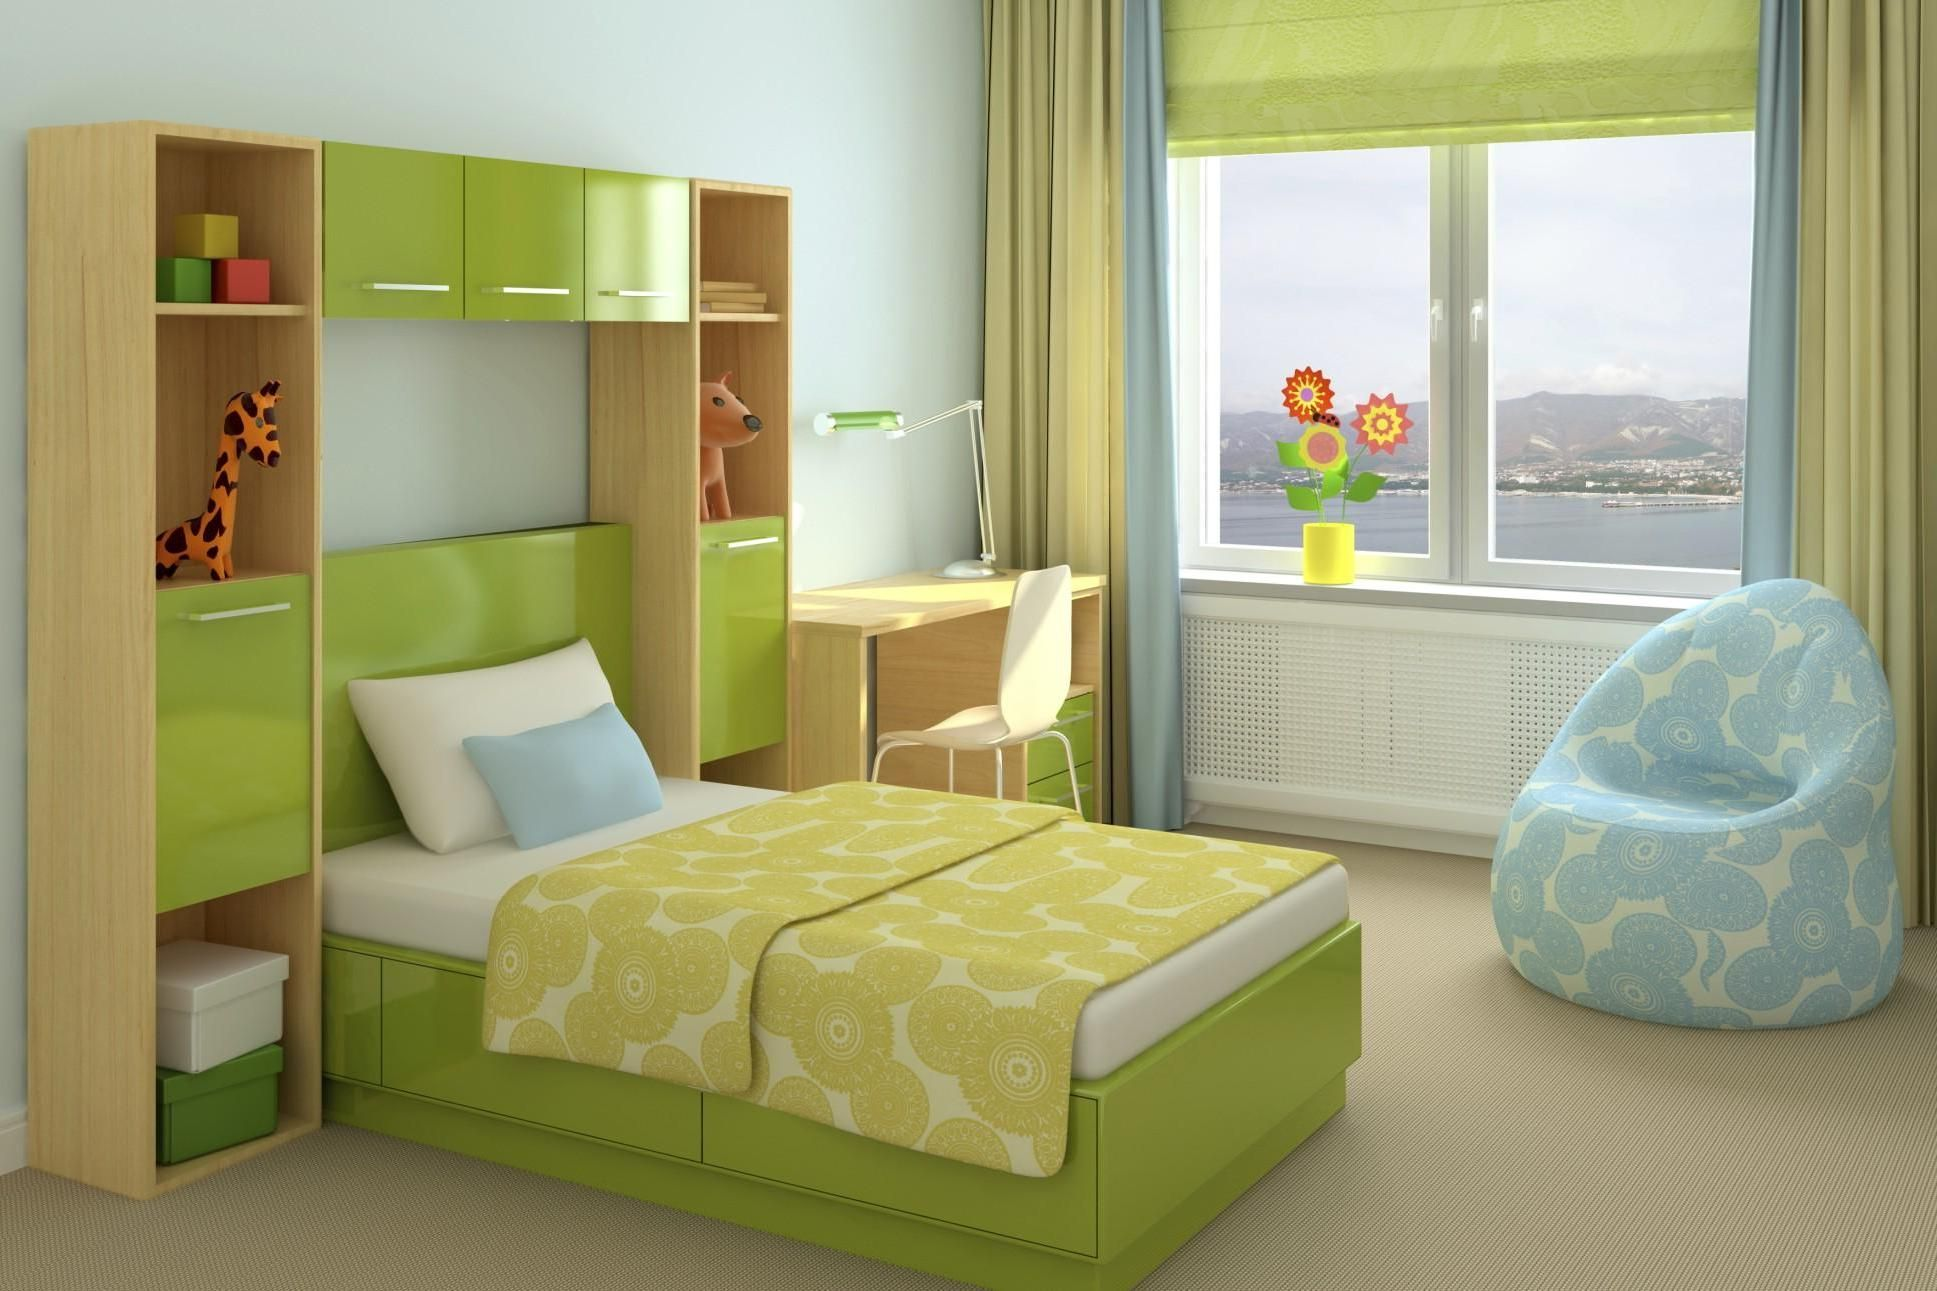 Loft Bedrooms Designs On With Resolution 900x900 Pixels Best Ikea Childrens Bunk Bed Canopy Girls Bedroom Green Green Bedroom Walls Lime Green Bedrooms